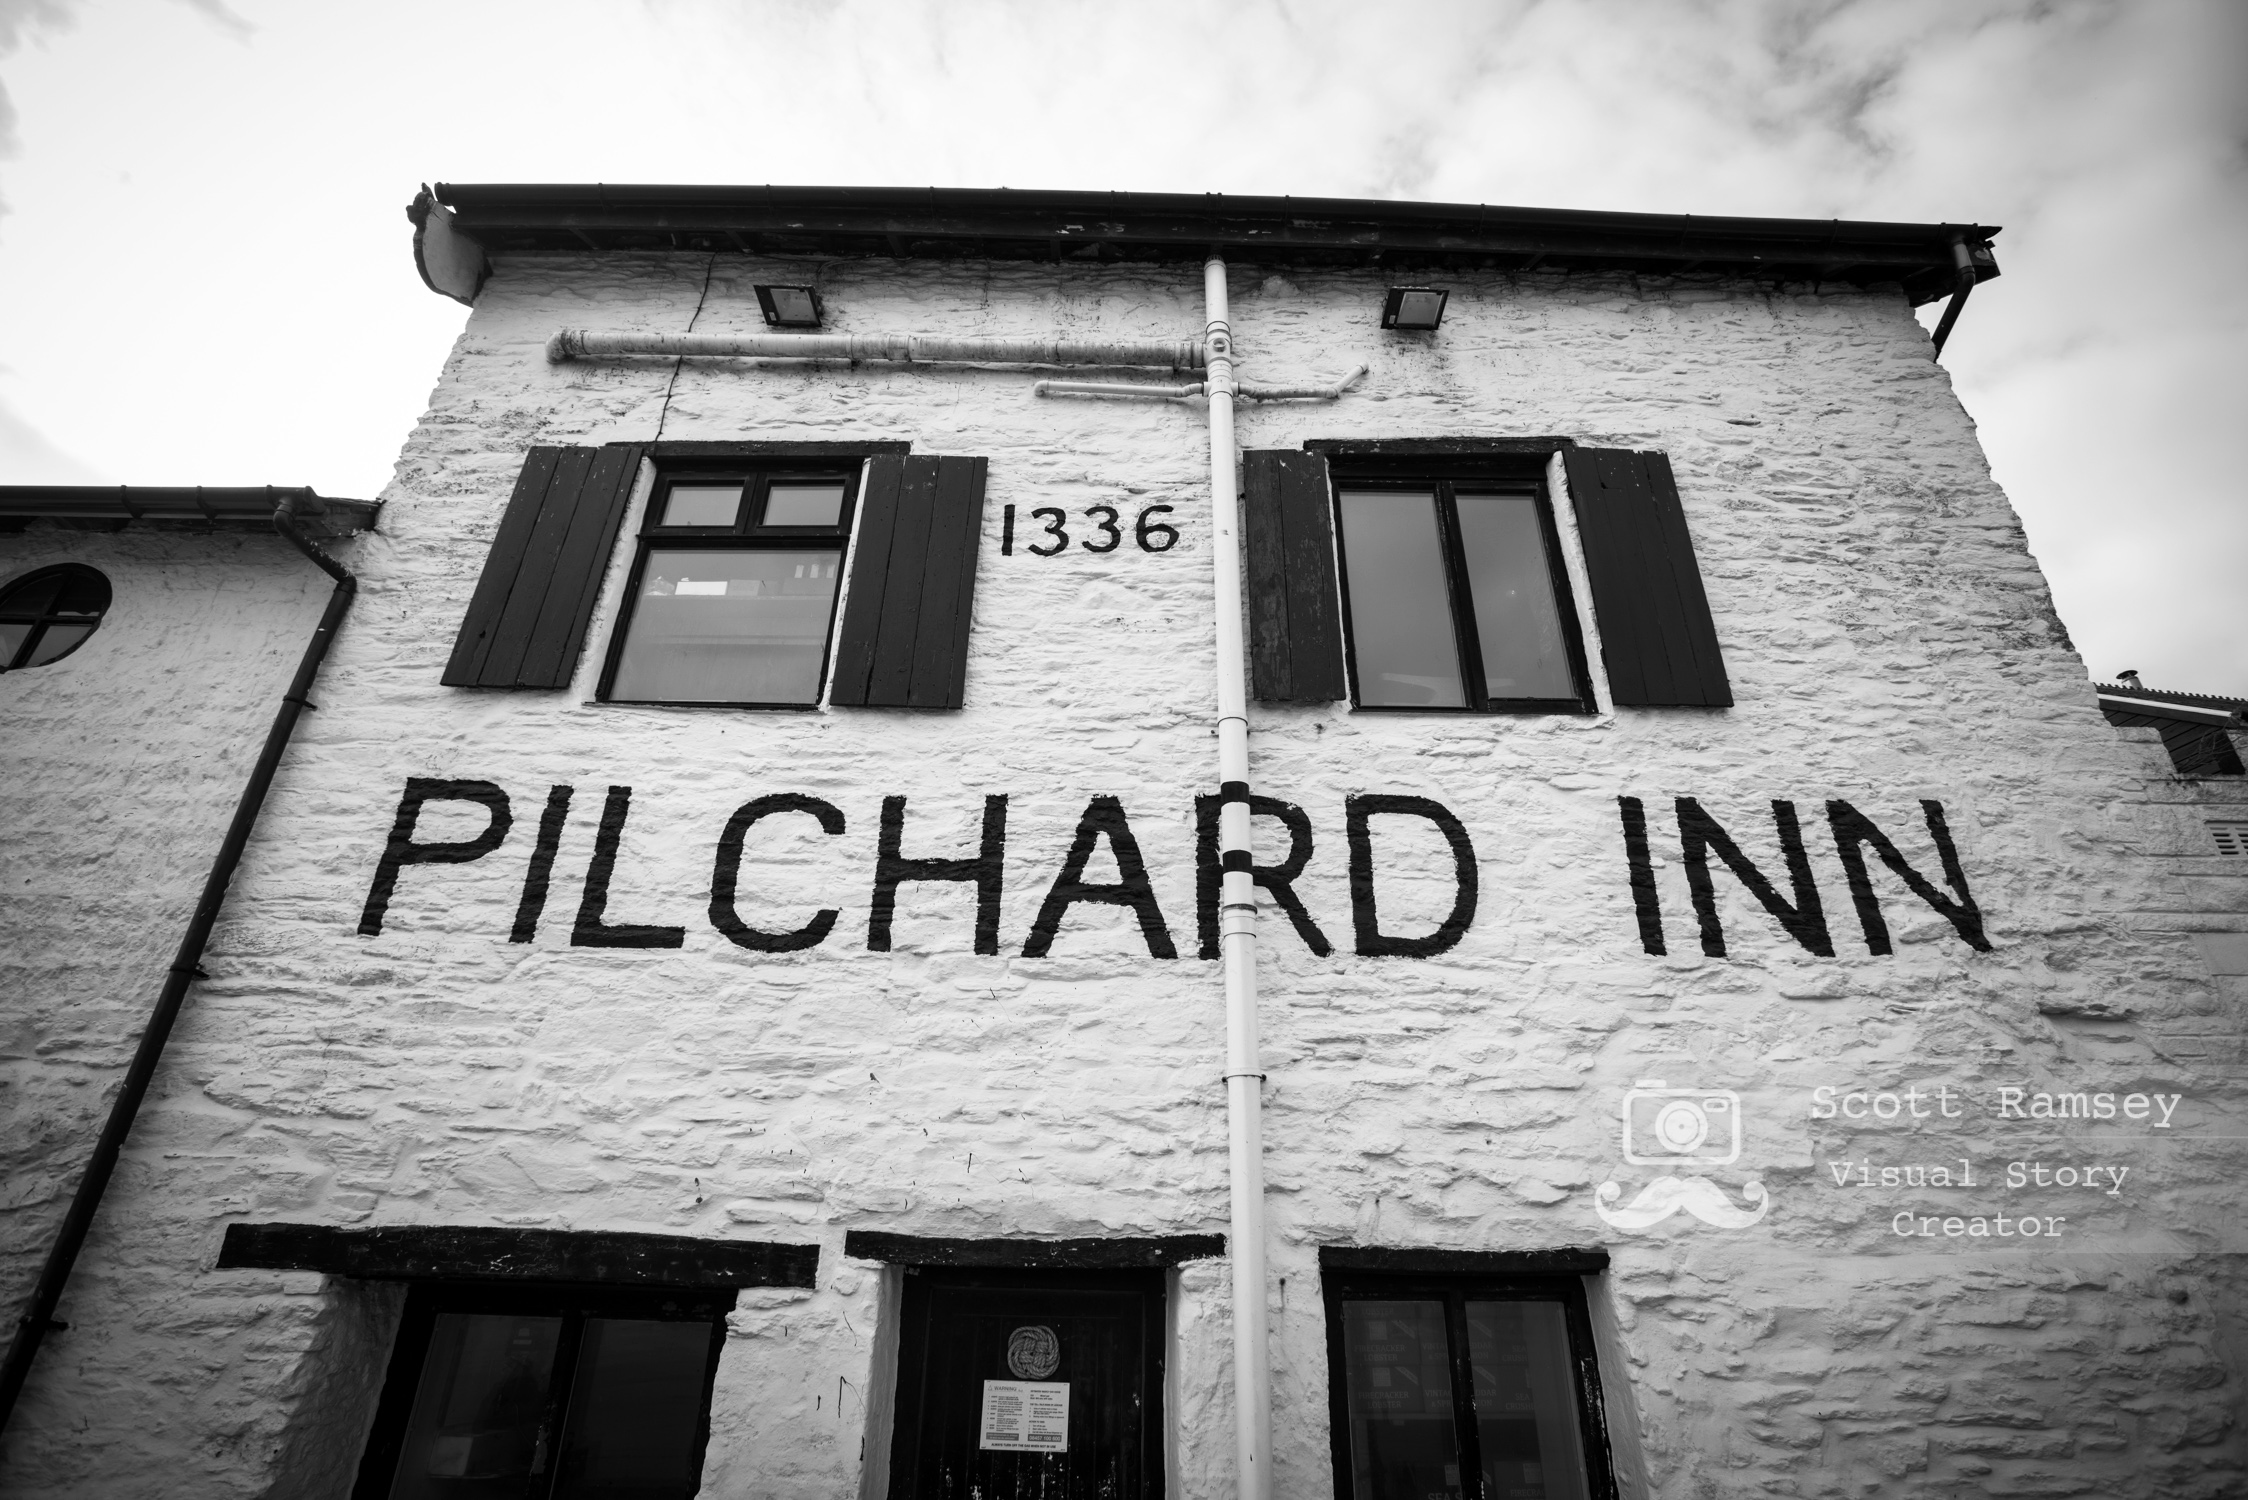 The Pilchard Inn on Burgh Island in Devon, England.  Photo © Scott Ramsey. The inn was built in 1336 and was an ideal place for smugglers to stay hidden from the law. It is small compared to today's standards with only a bar, a roaring fire and few stools inside. If only the walls could talk, just imagine the wonderful stories they could tell.